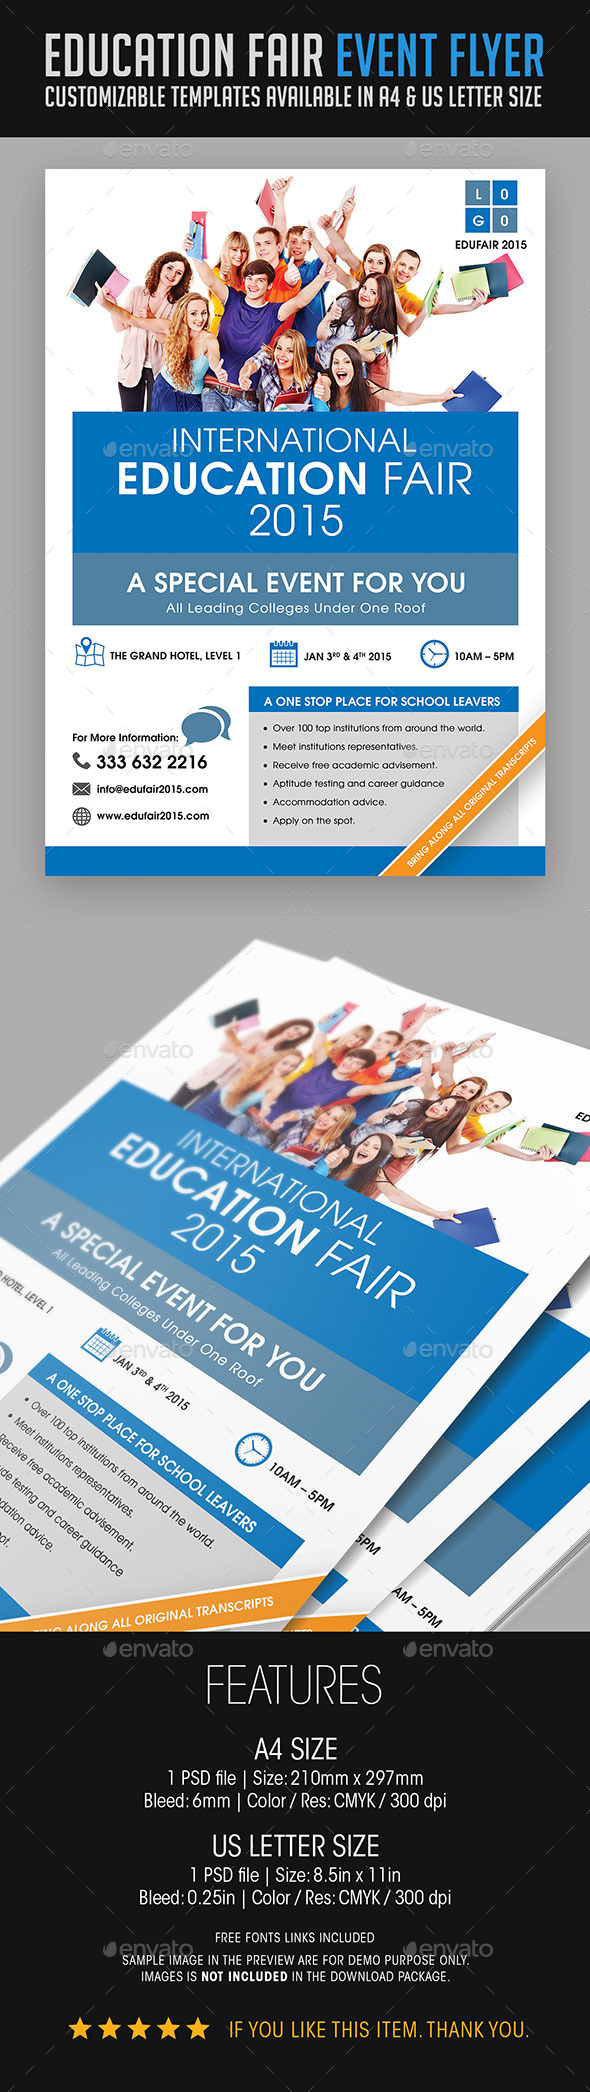 Education Fair Event Flyer - Events Flyers